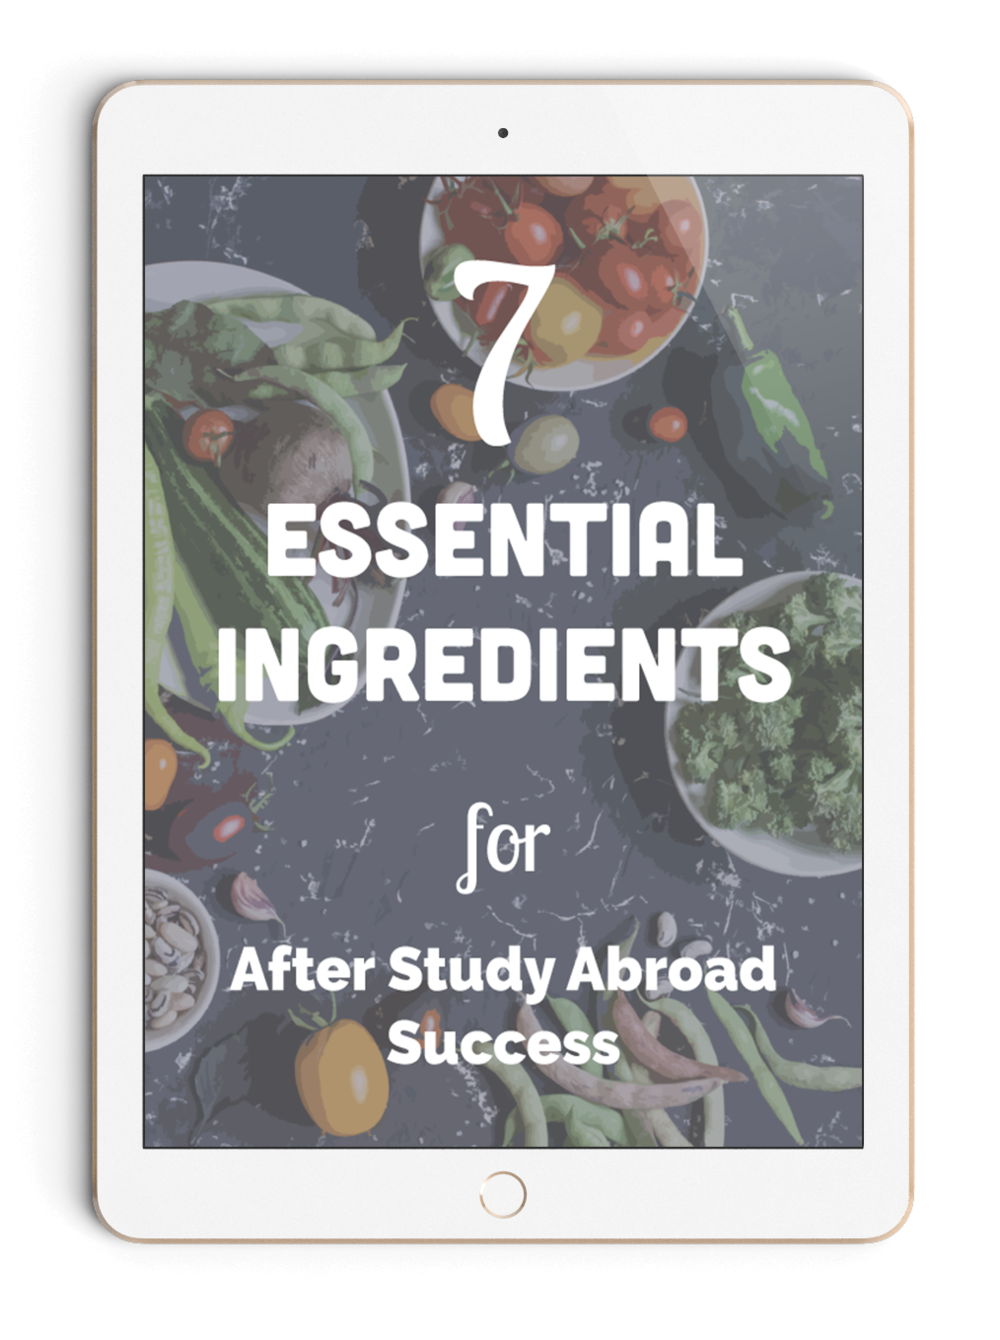 Free mini workbook. There are seven things you  must do after study abroad. This free workbook shows you those tasks and has fun exercises to help you with the first step.